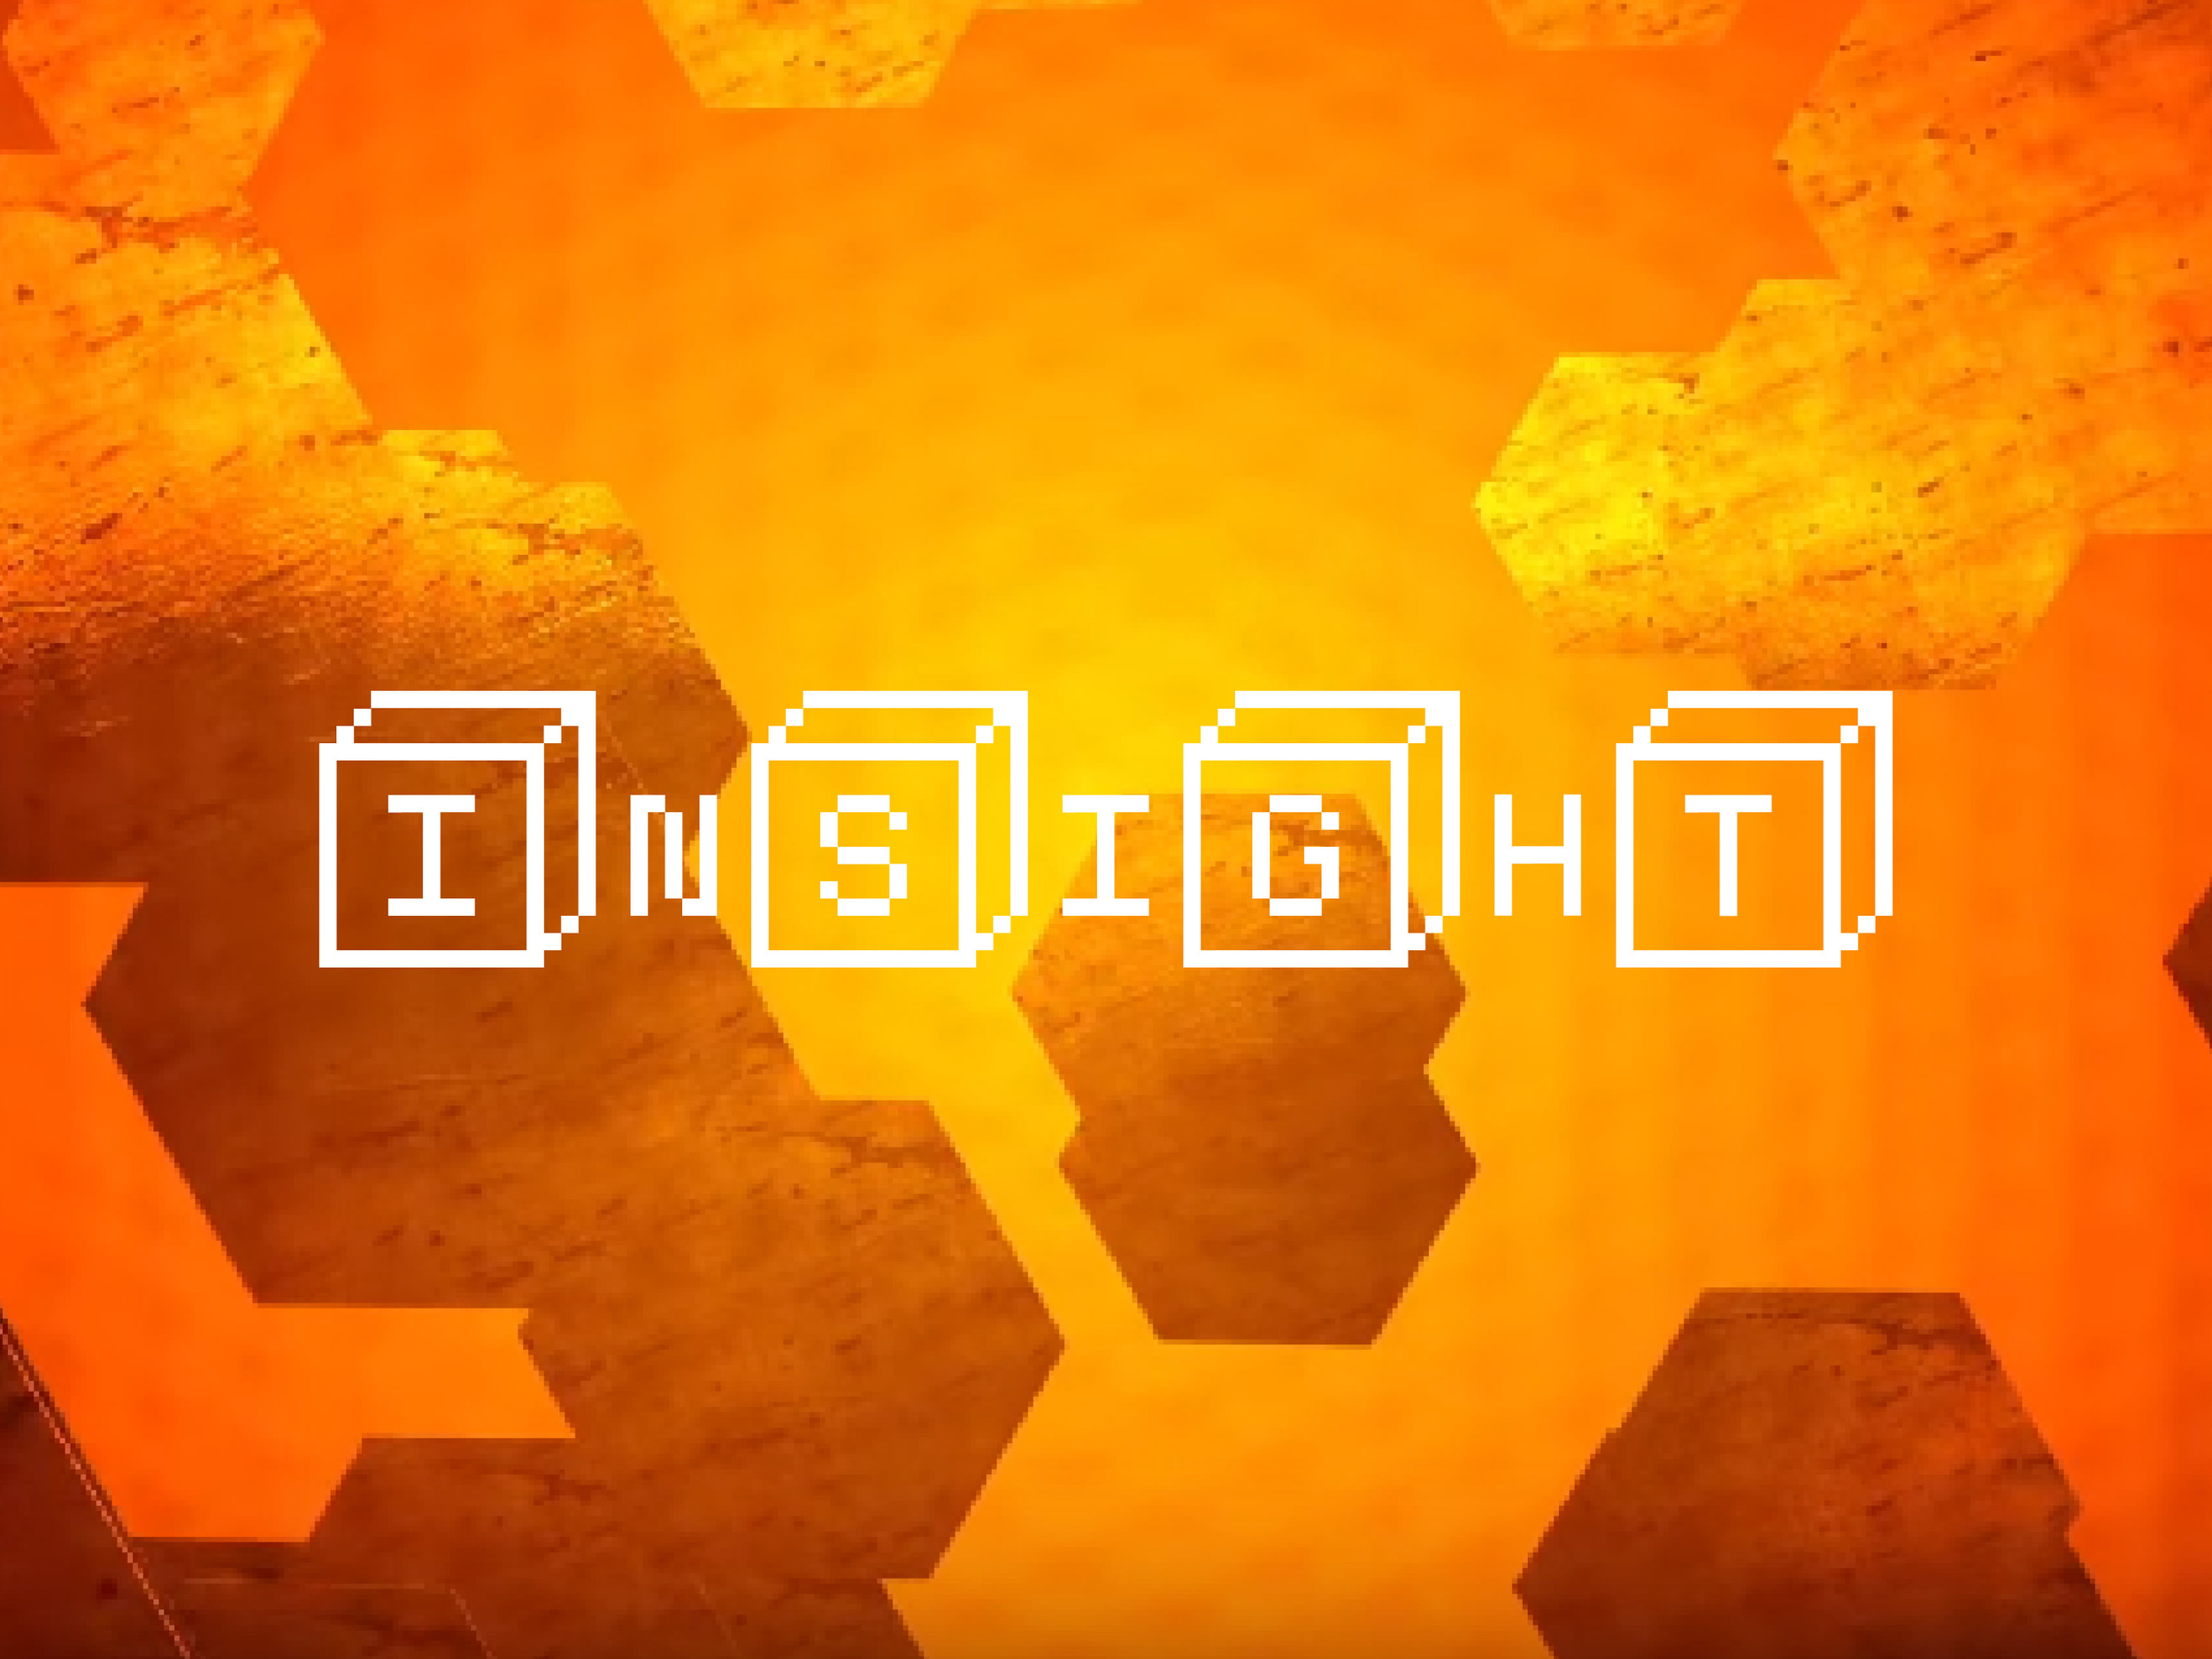 InSight images gif19.jpg